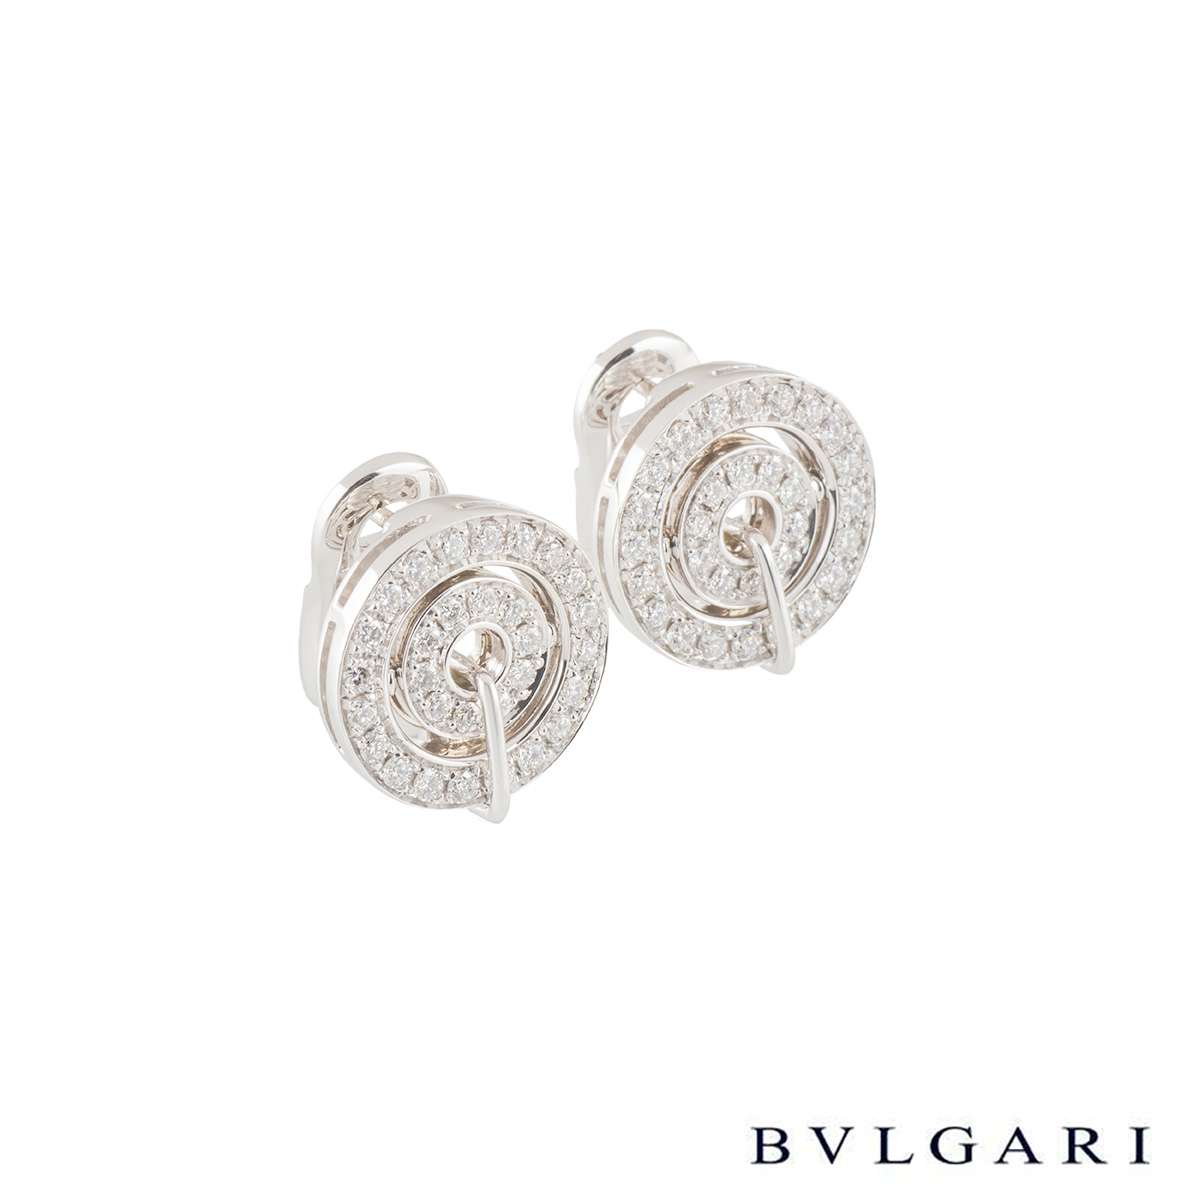 Bvlgari Astrale Diamond Earrings